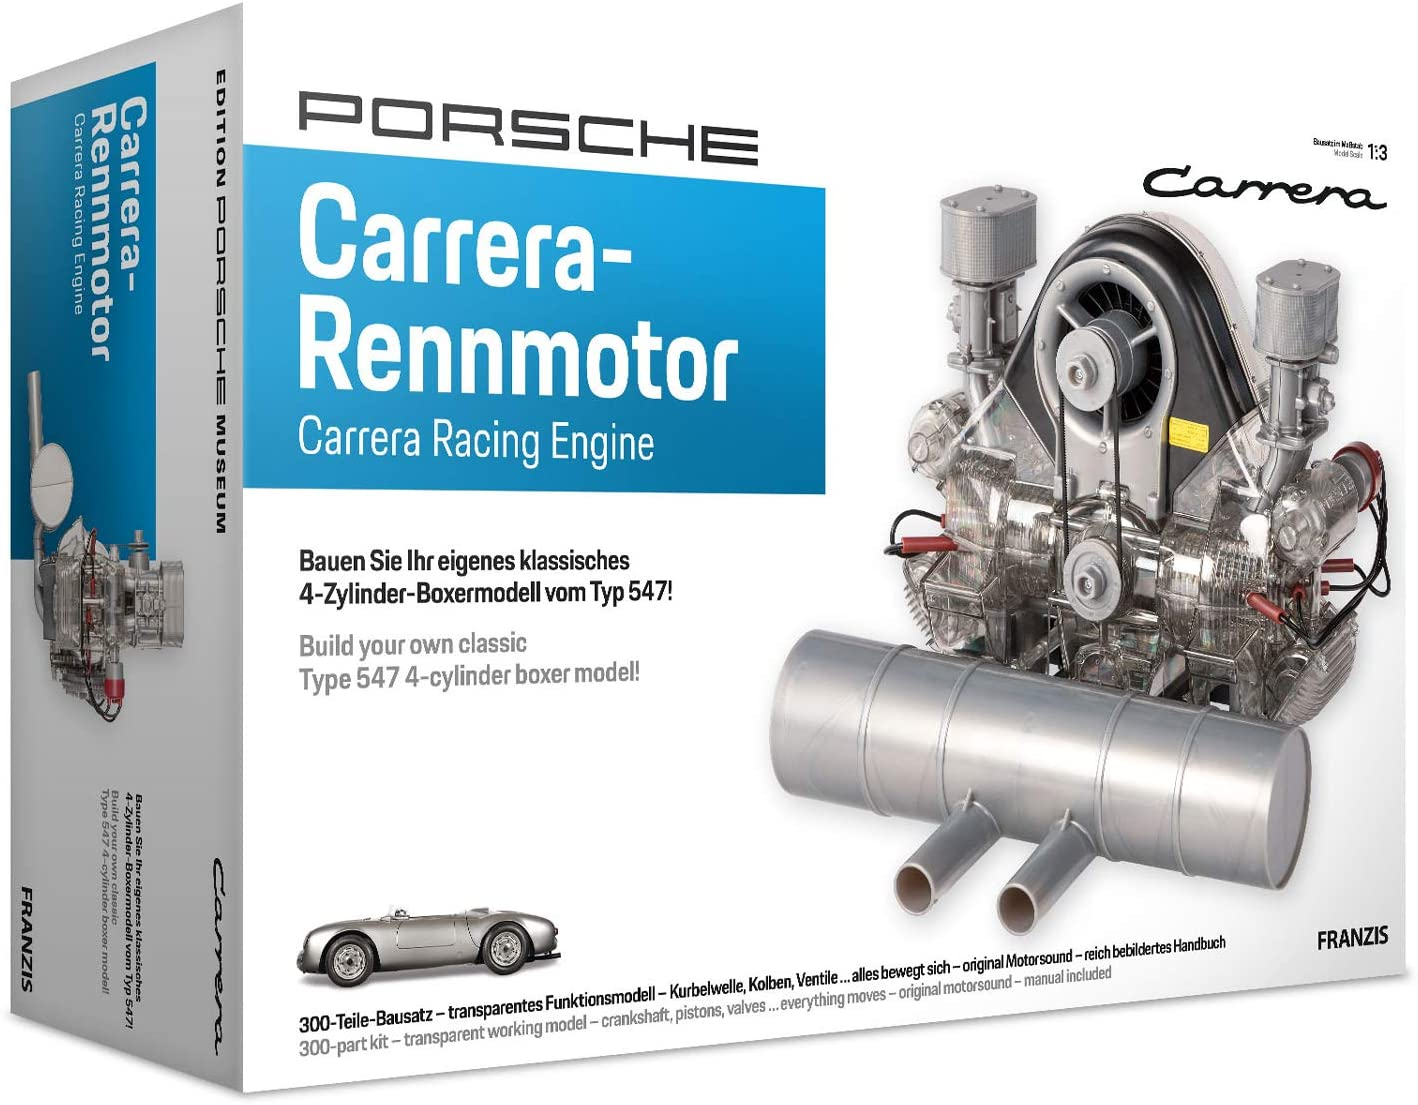 Porsche Carrera 547 1:3 Scale Engine Kit Box